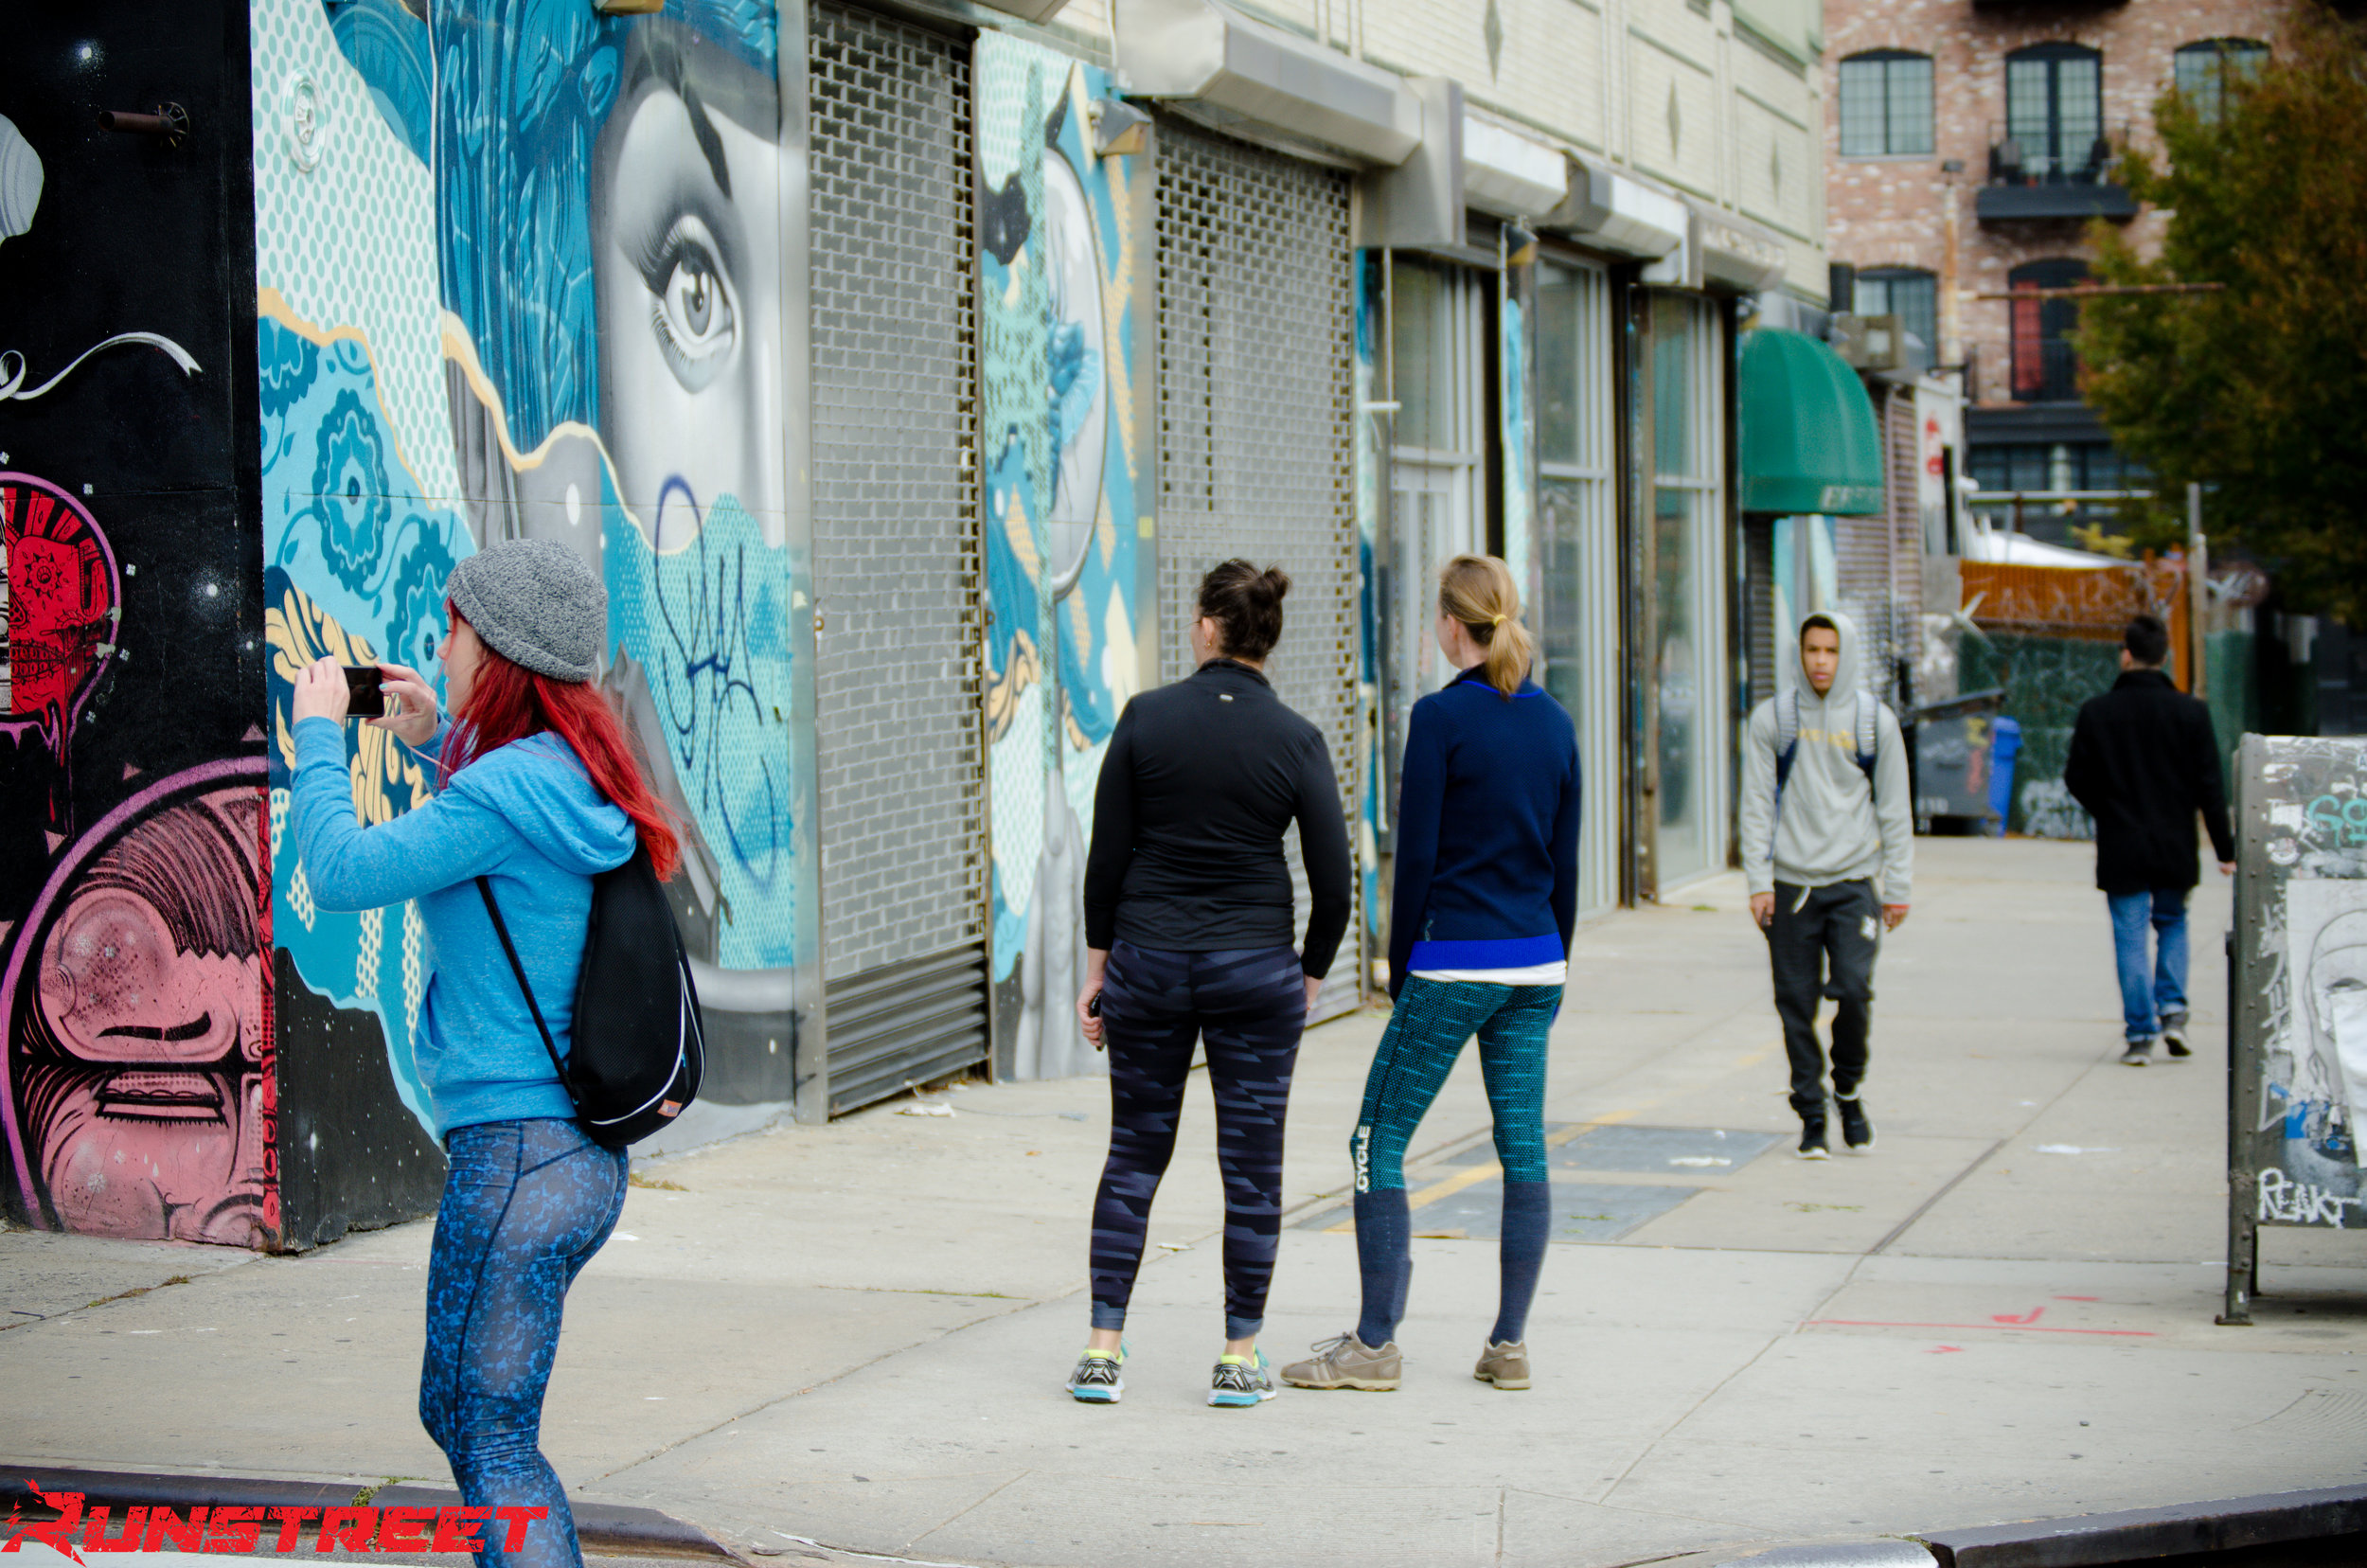 Runstreet- Williamsburg Street Art Run -10.29-7236.jpg